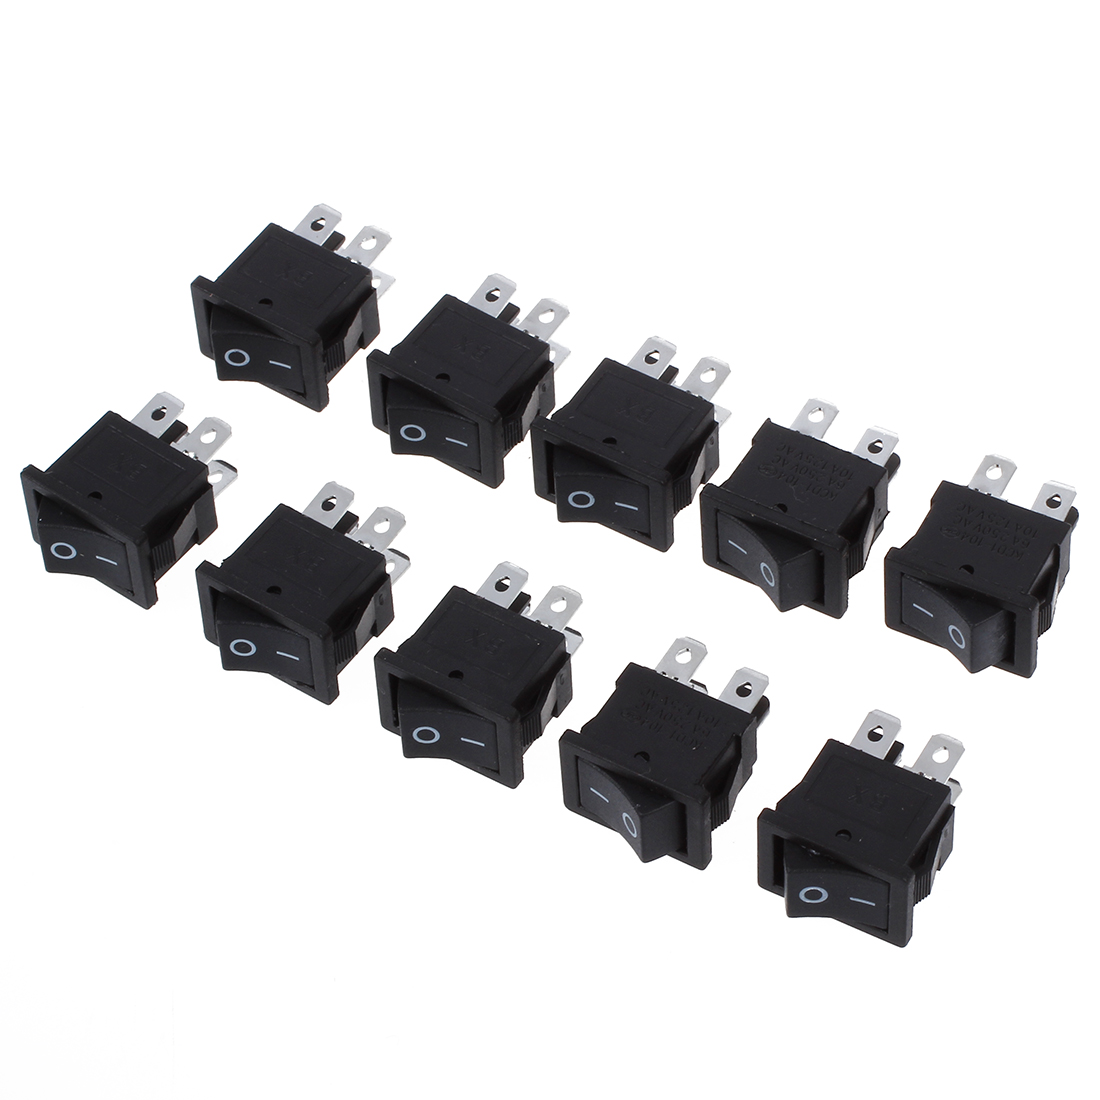 10 Pcs x 4 Pin On-Off 2 Position DPST Boat Rocker Switches 10A/125V 6A/250V AC 5 pieces lot ac 6a 250v 10a 125v 5x 6pin dpdt on off on position snap boat rocker switches